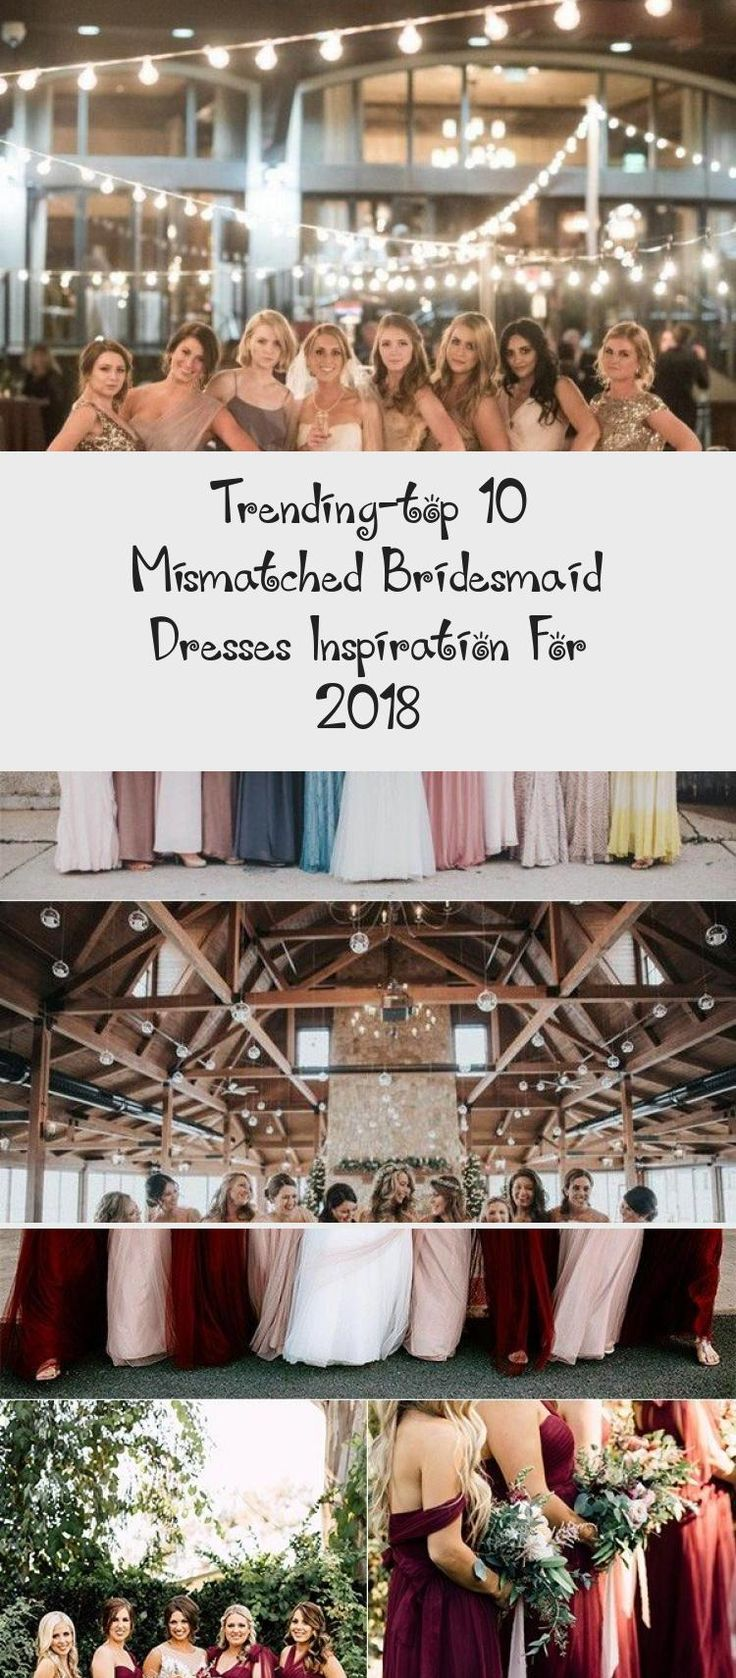 I like doing different color dresses and playing with the greys, blues, and purples. I think the different color greys is really pretty. #BlushBridesmaidDresses #BridesmaidDressesColors #IvoryBridesmaidDresses #BridesmaidDressesSpring #OffTheShoulderBridesmaidDresses